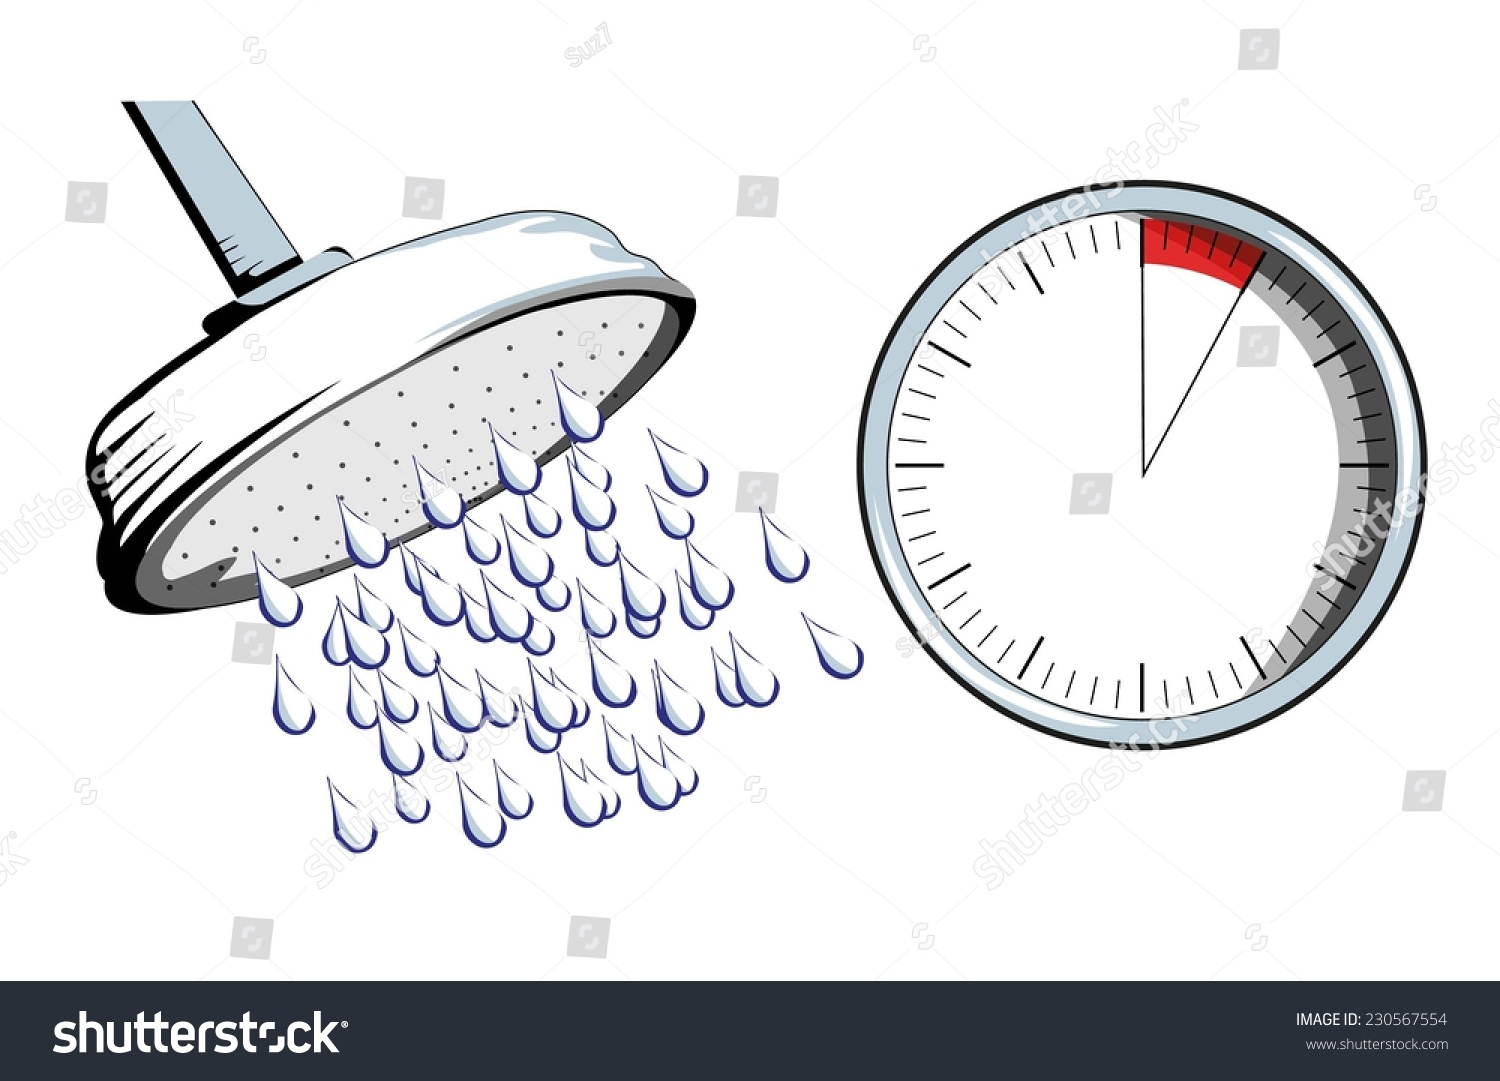 Duschkopf Clipart Shower Head With Timer Stock Vector Illustration 230567554